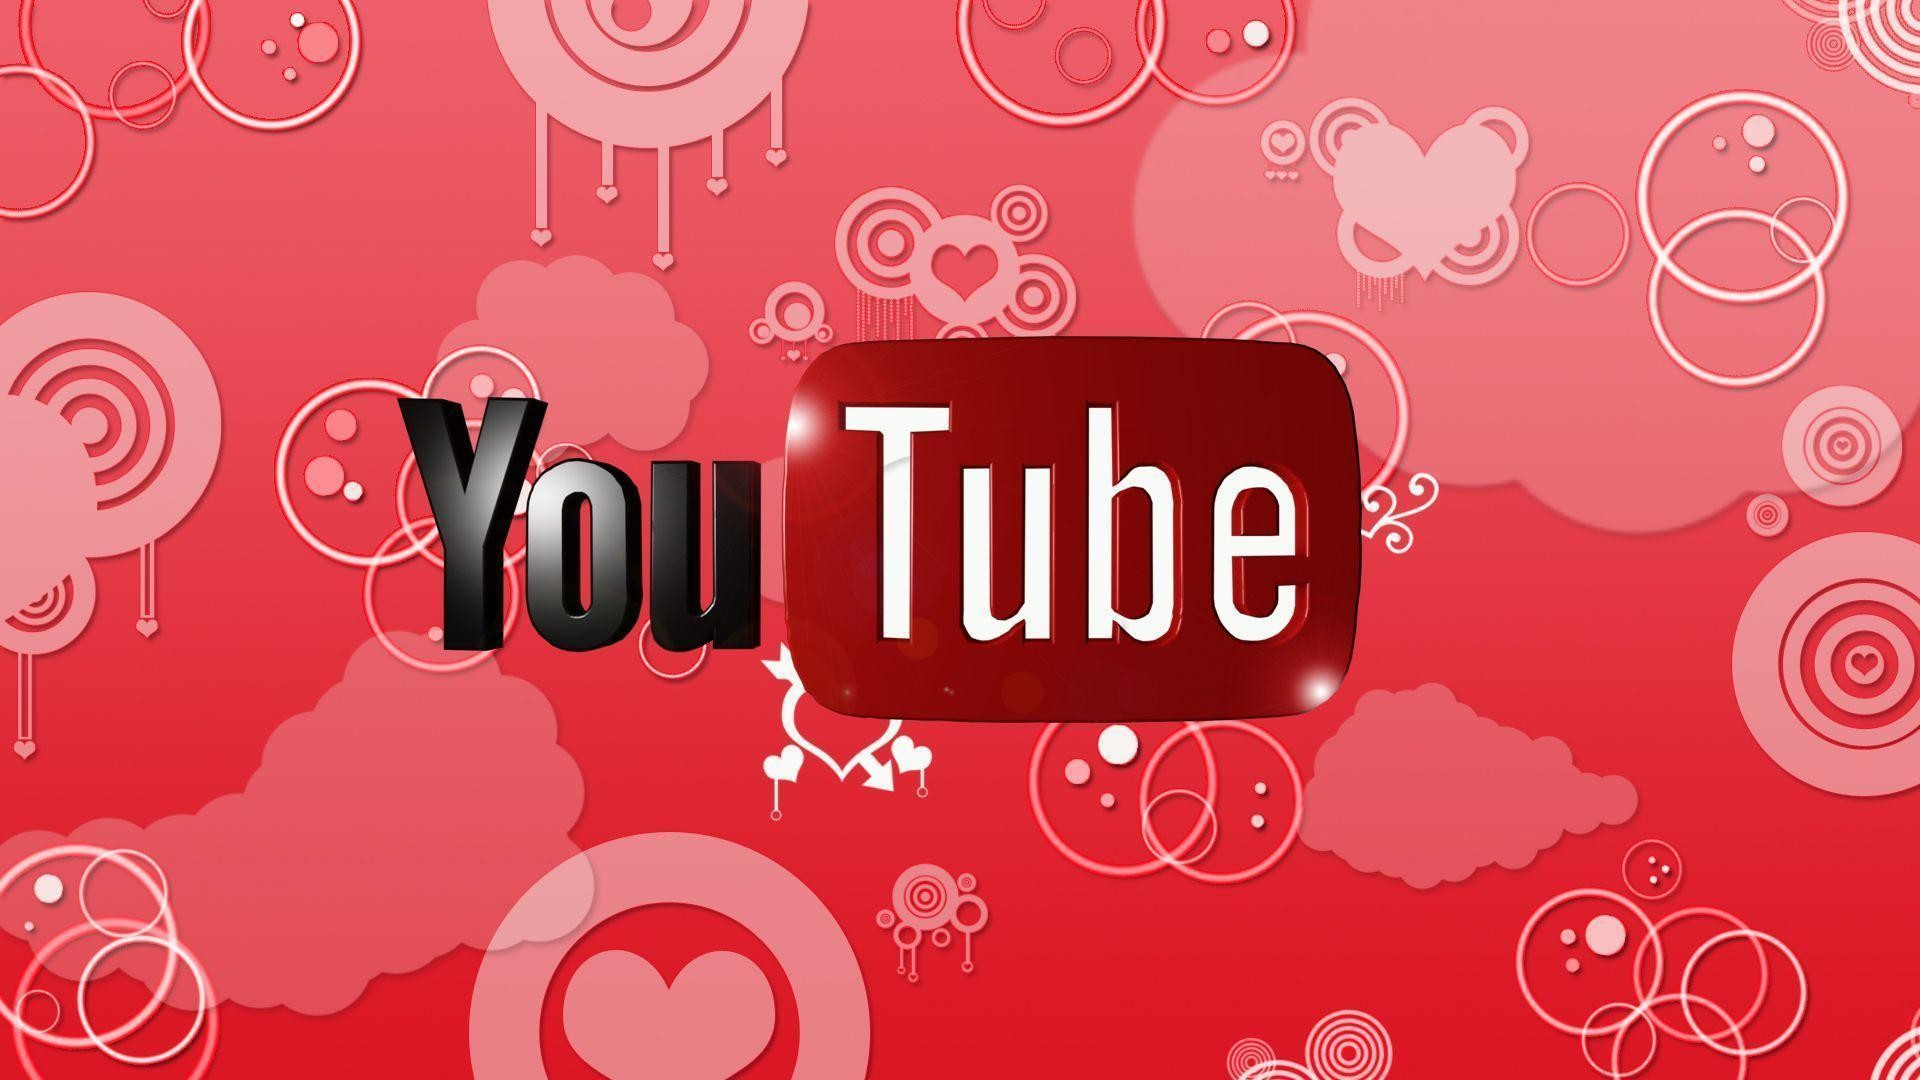 Youtuber wallpapers 61 images - Love f wallpaper hd download ...